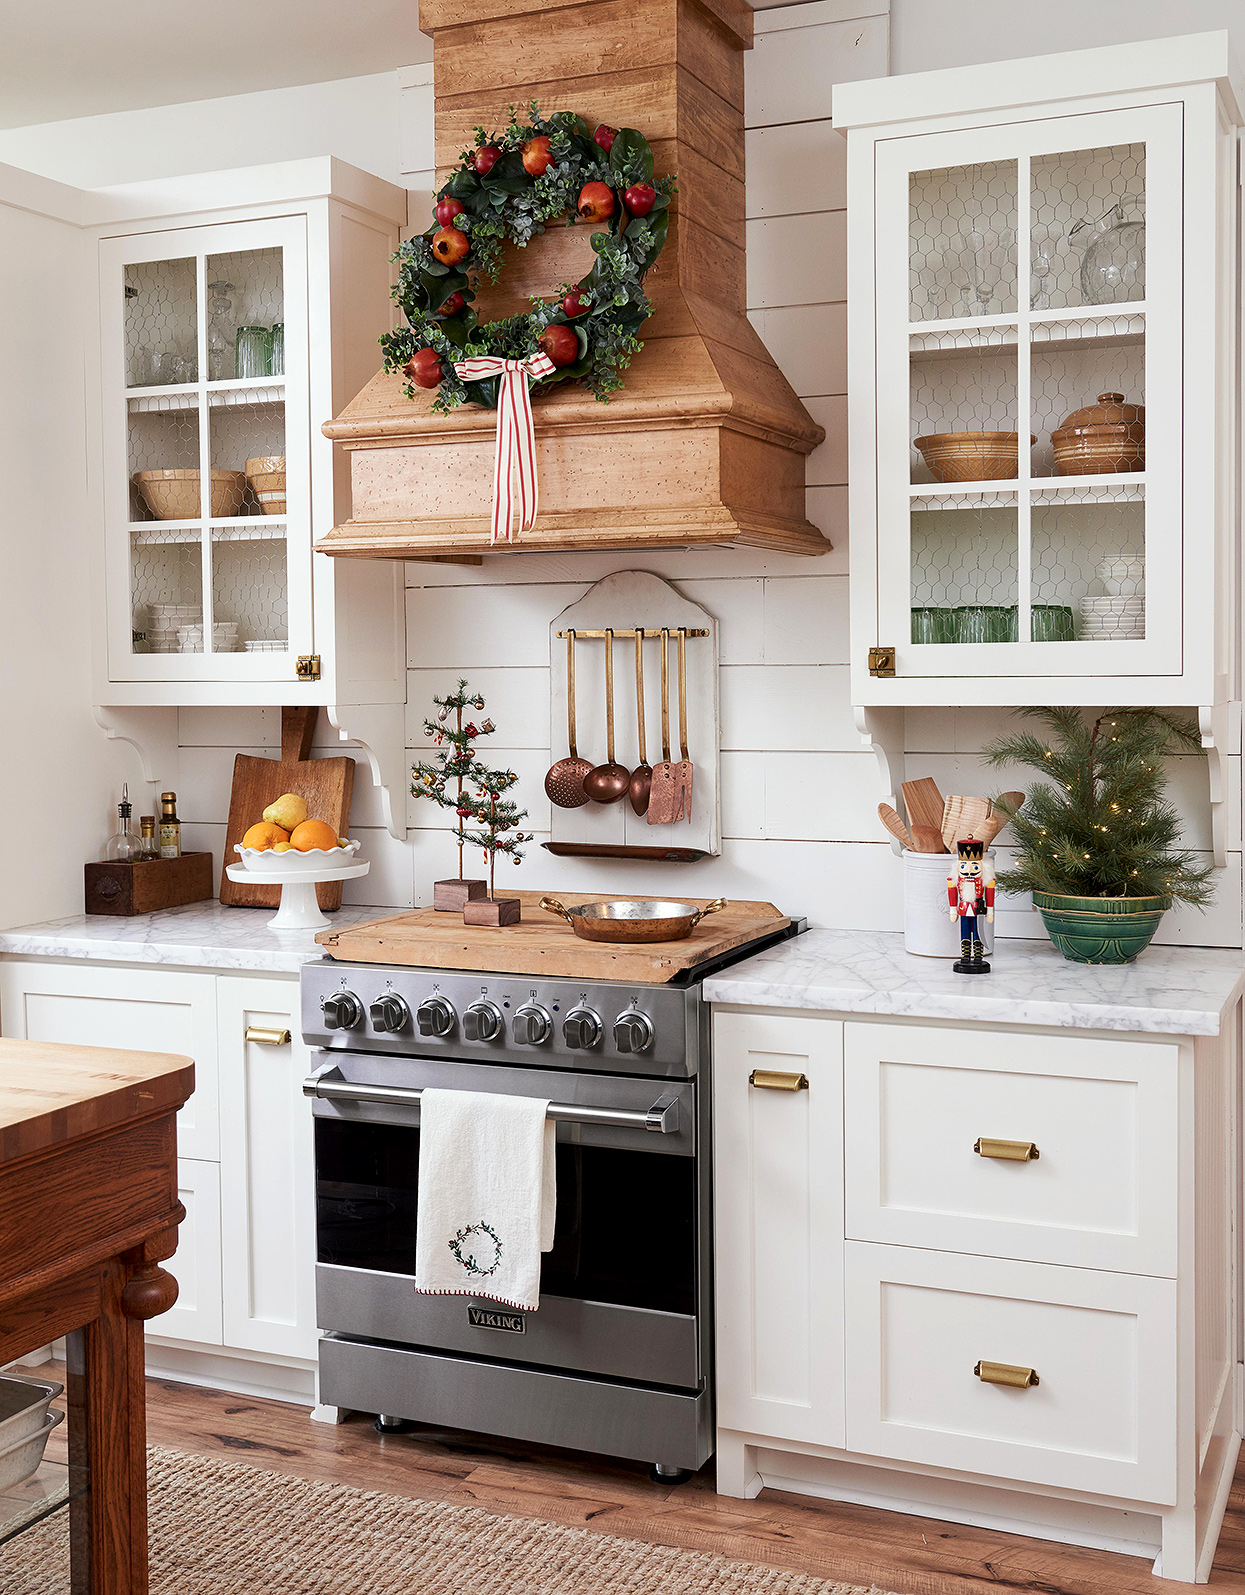 cottage kitchen with Christmas wreath on range hood